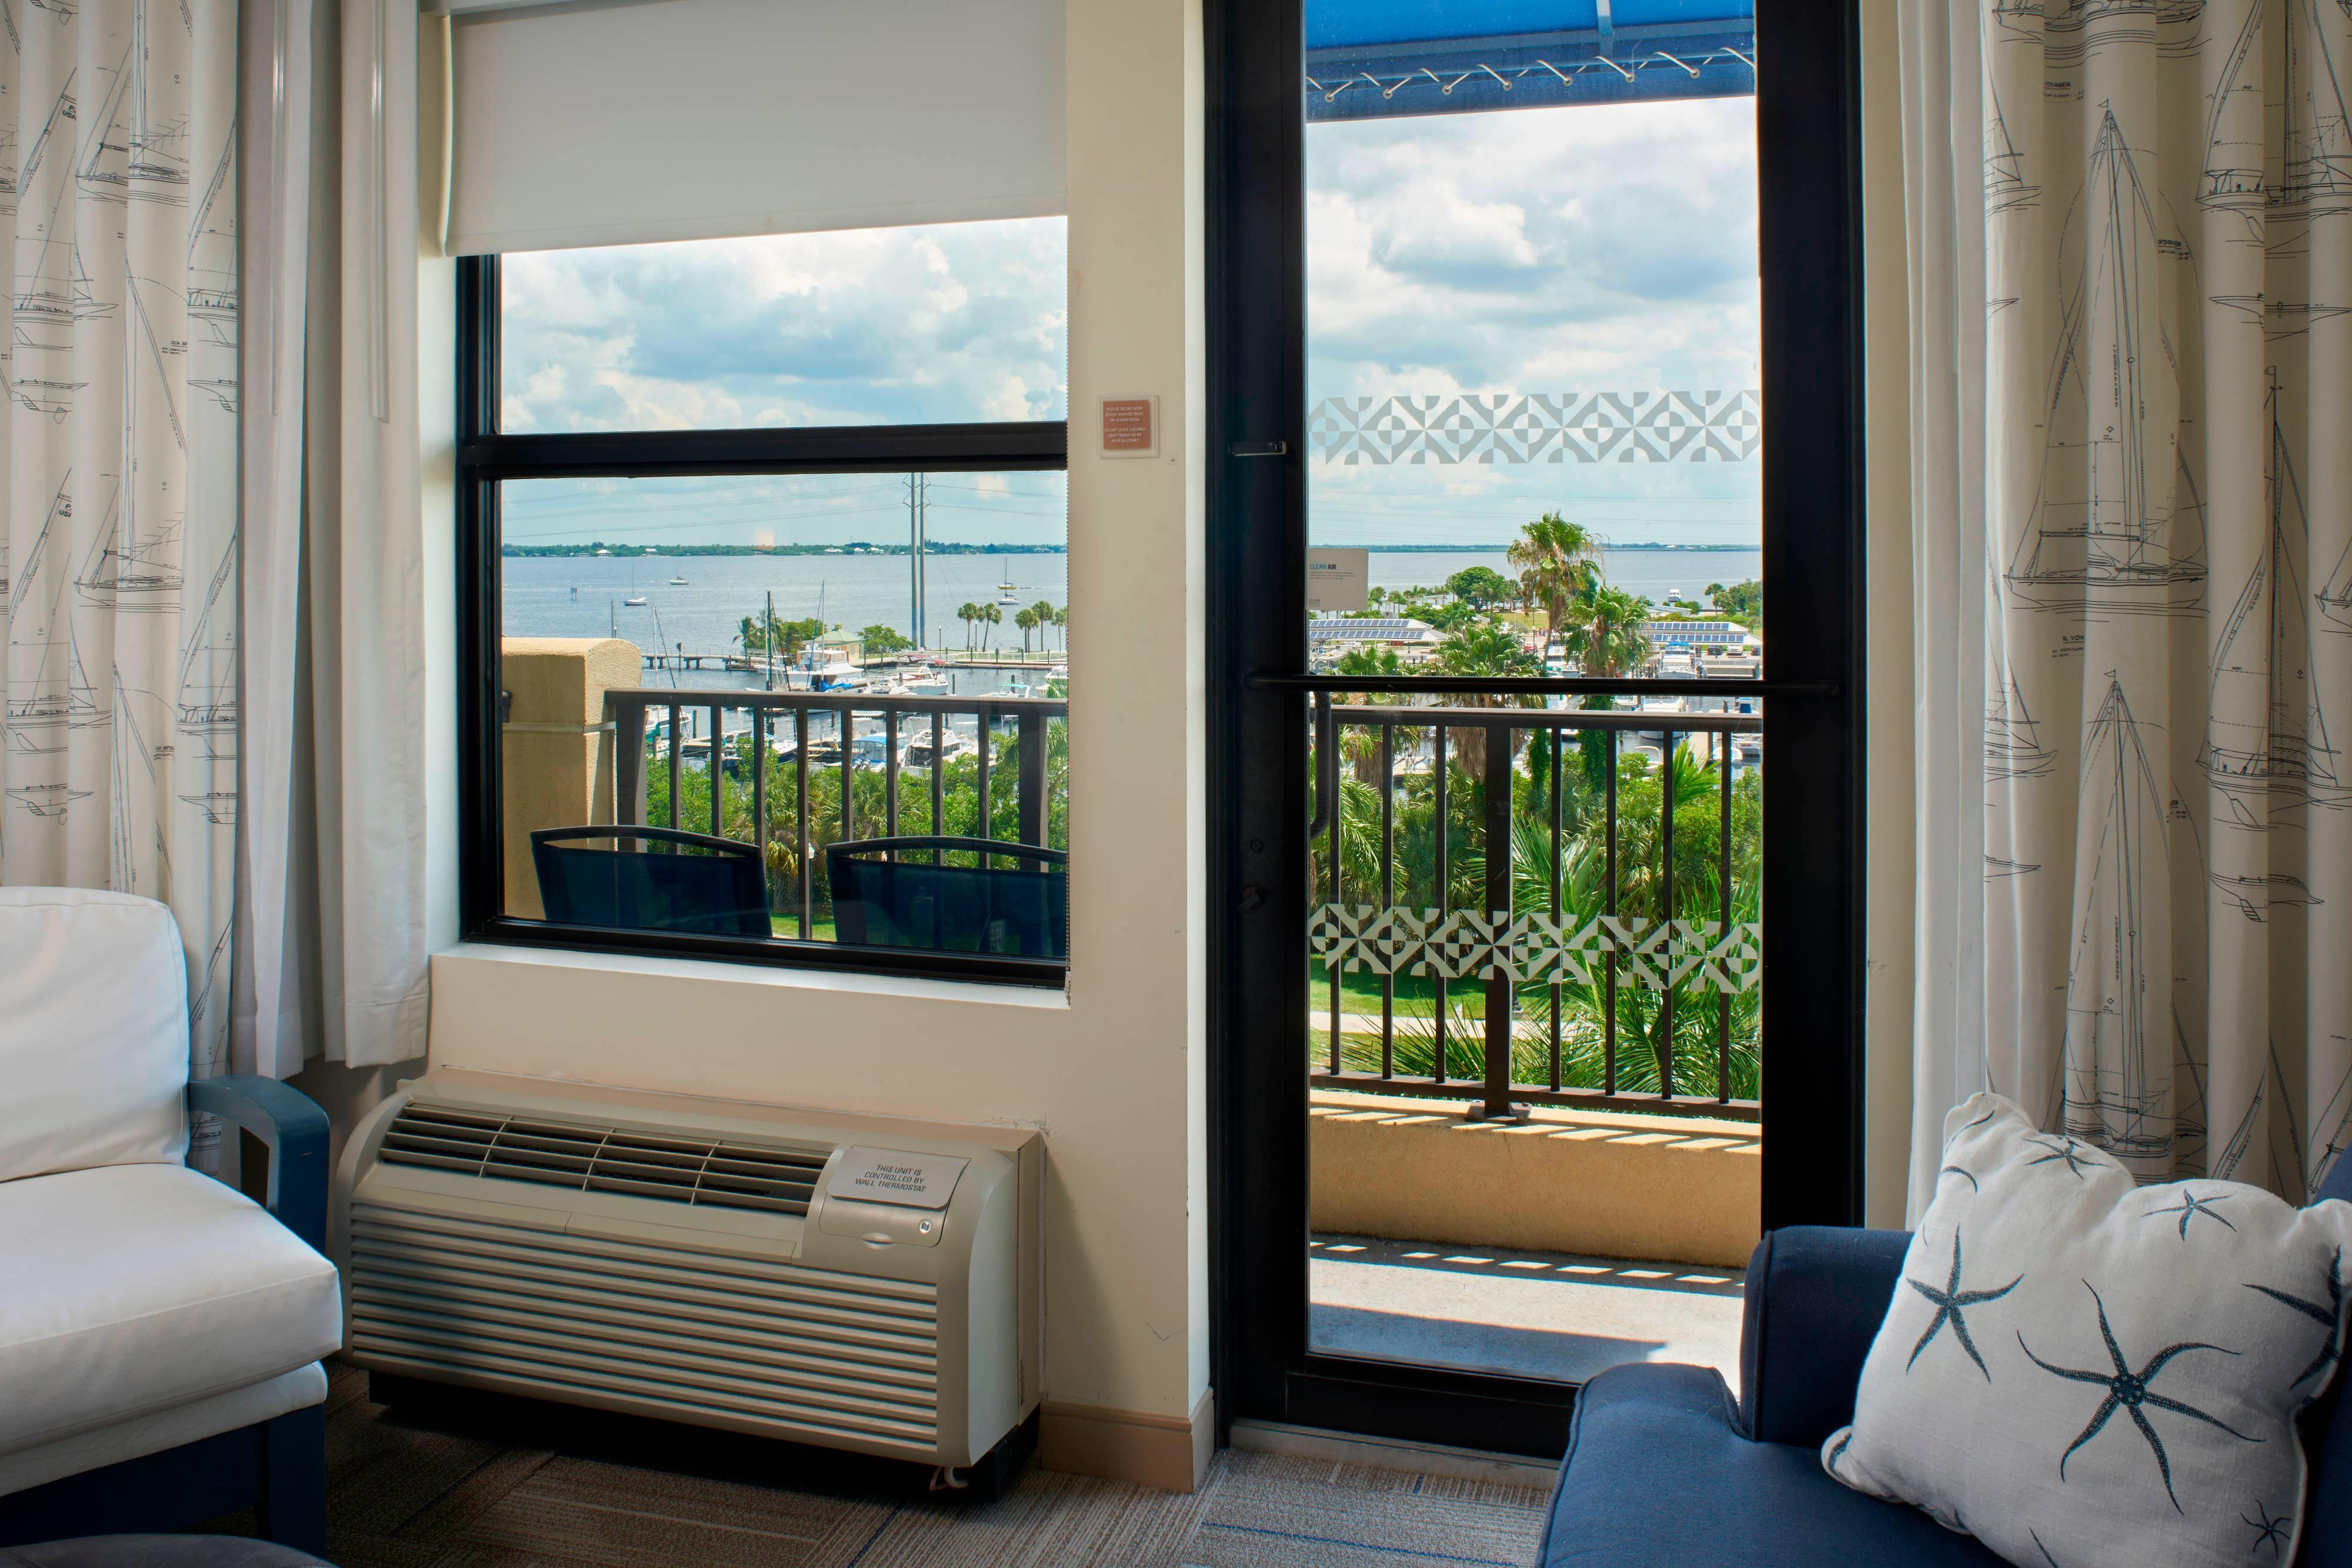 Guest Room - Balcony View